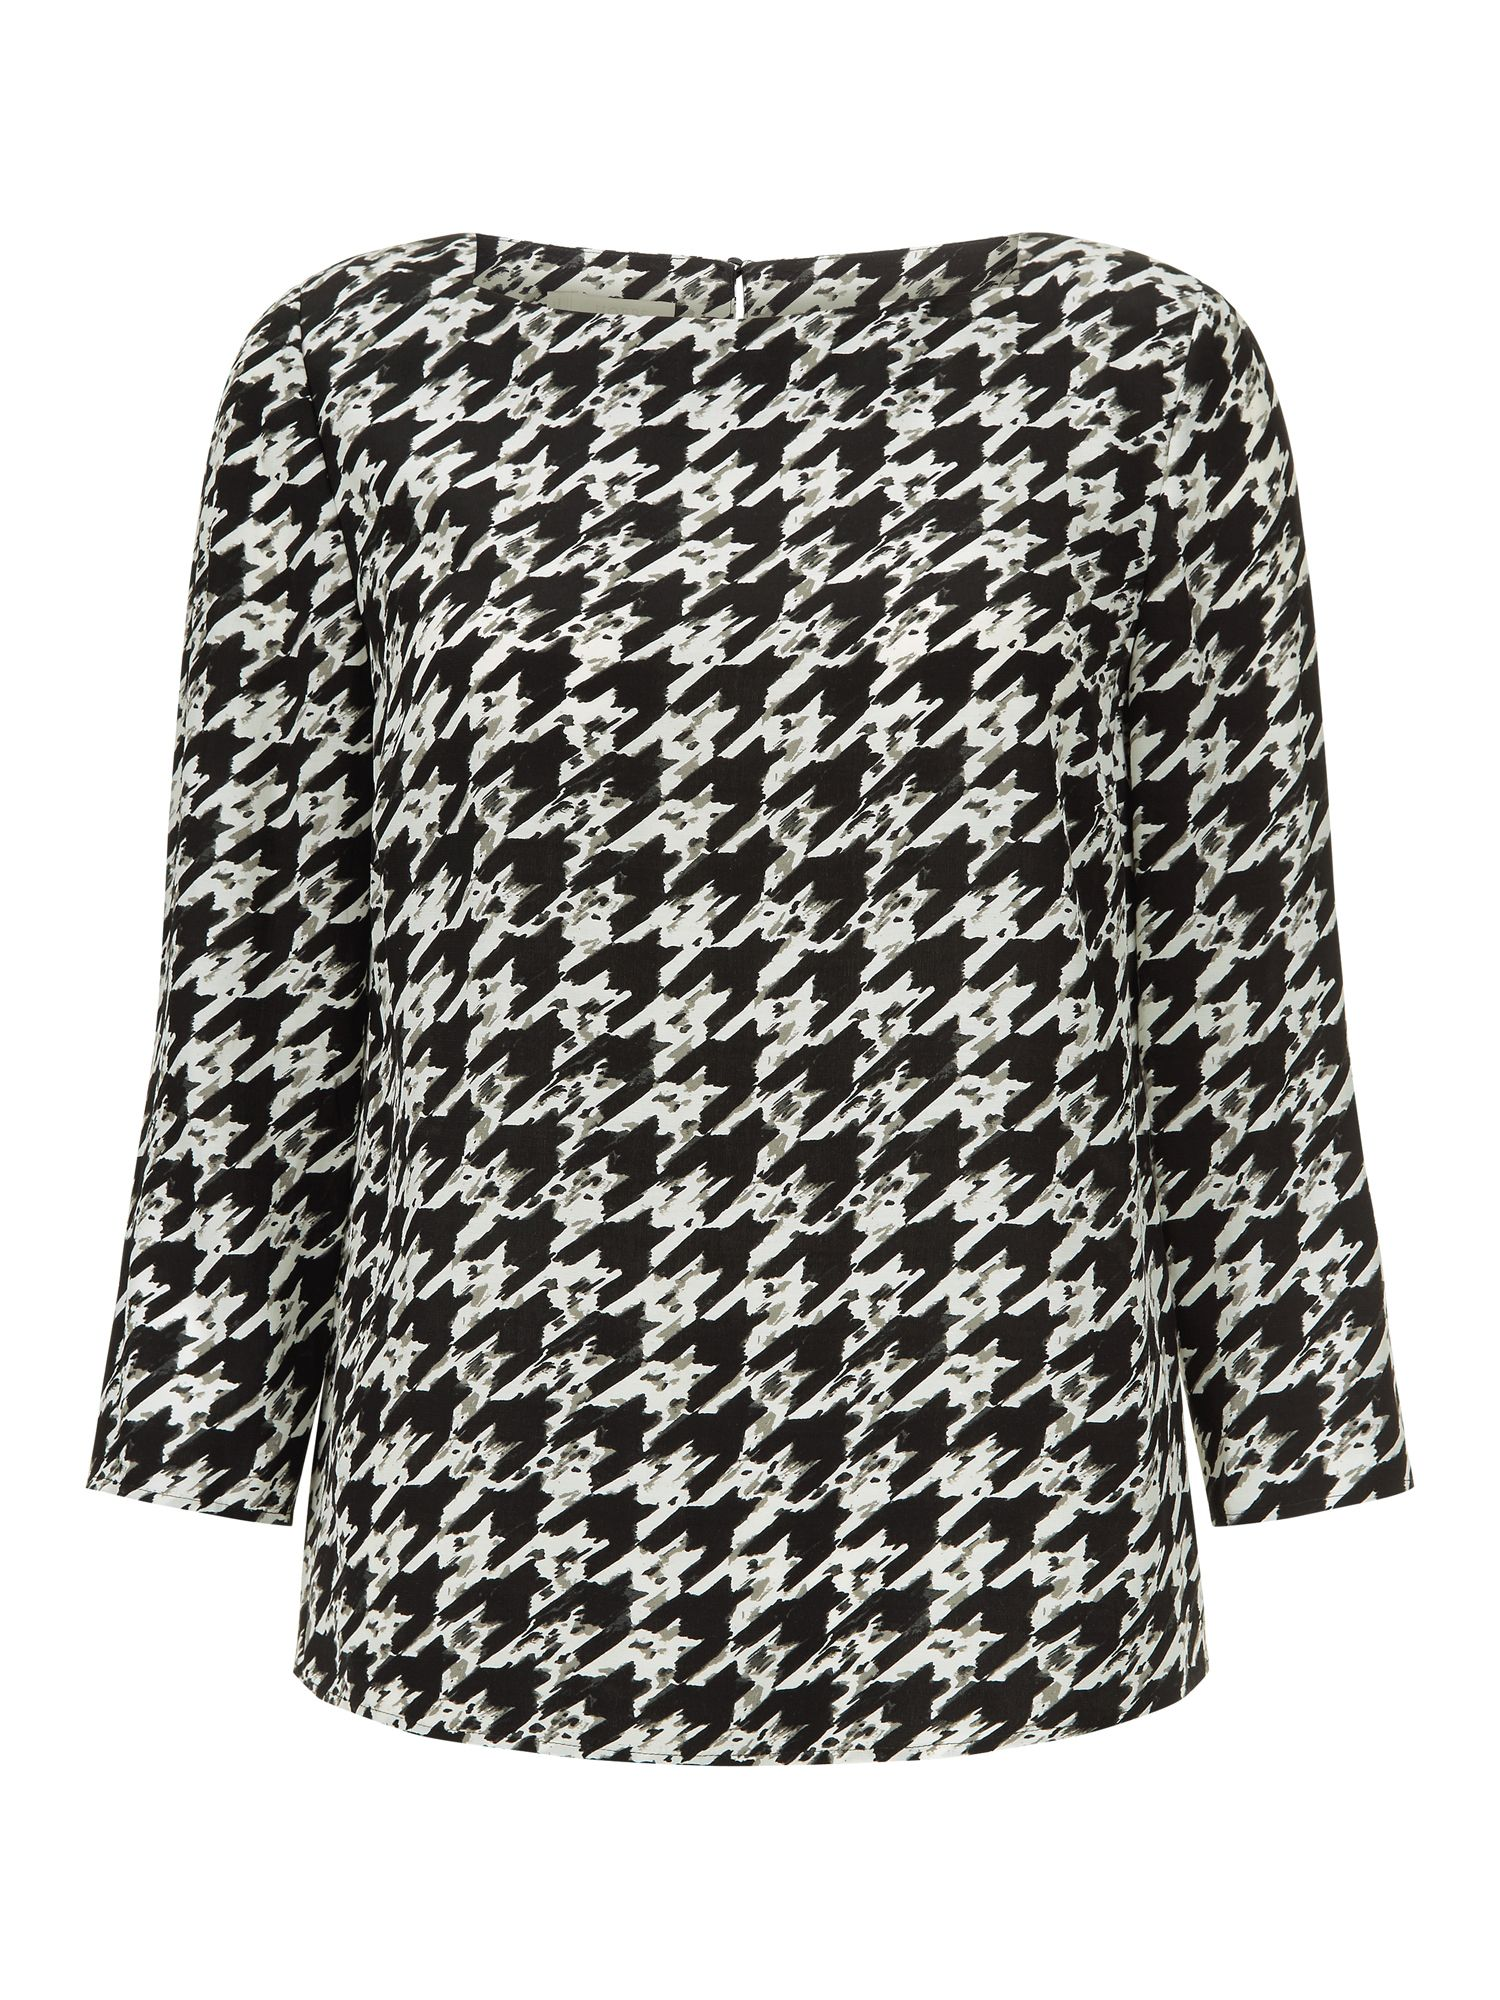 Hobbs Floretta Top, Multi-Coloured